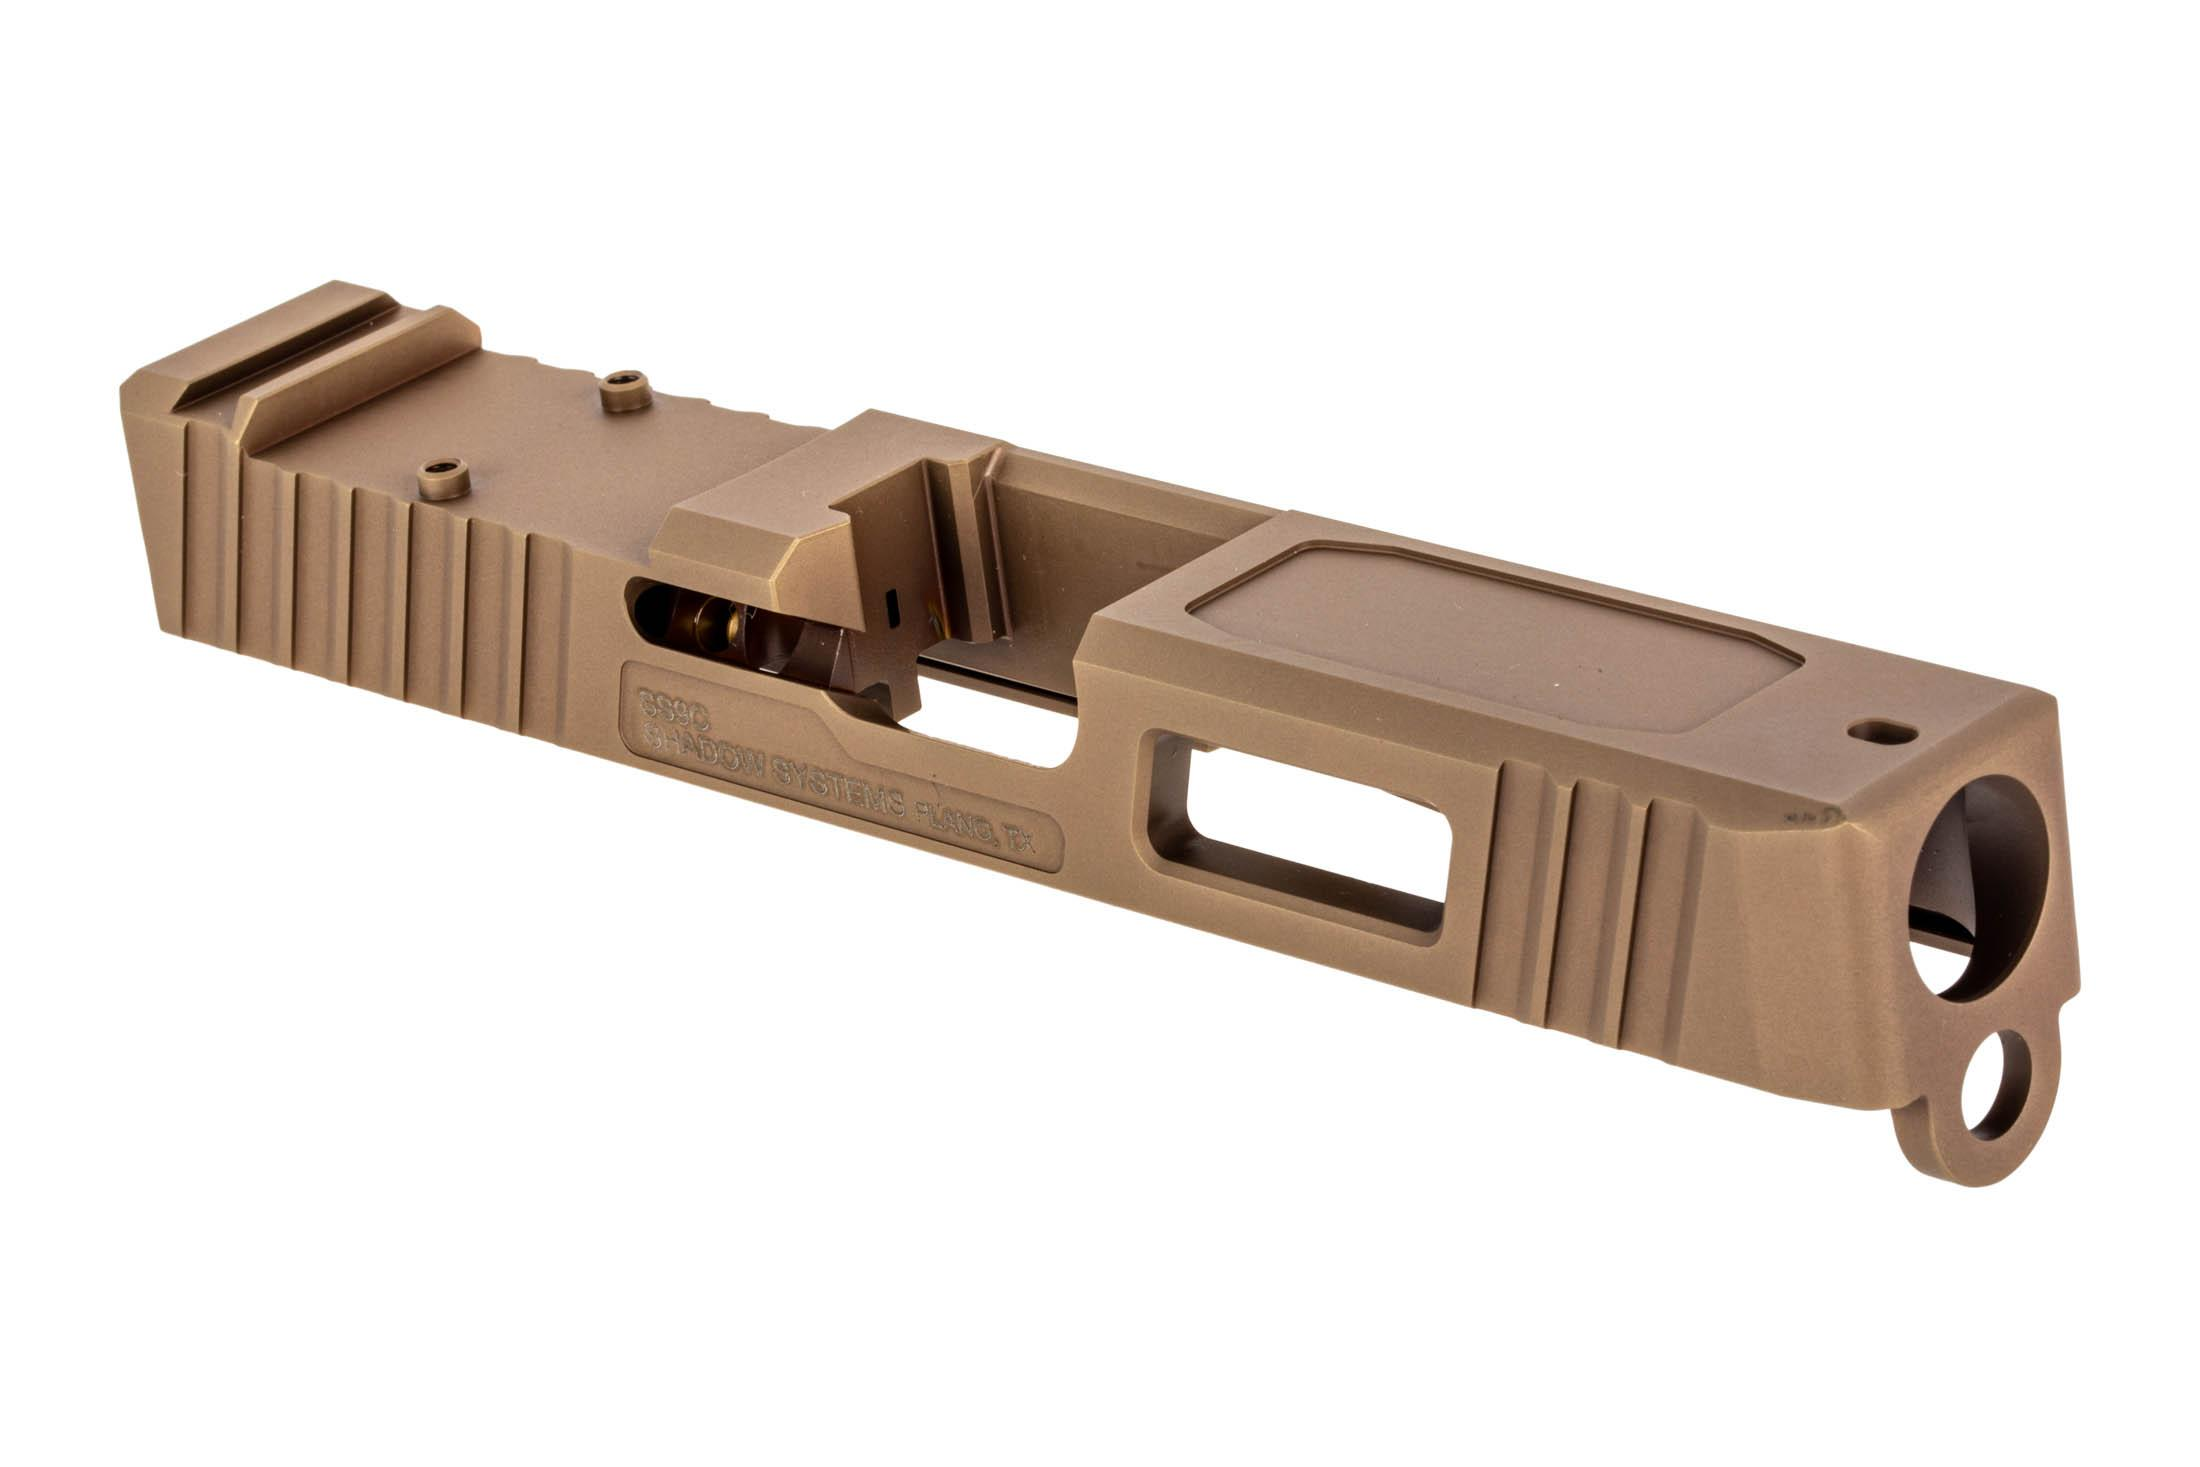 The Shadow Systems Glock 19 Gen 3 stripped slide features an FDE finish